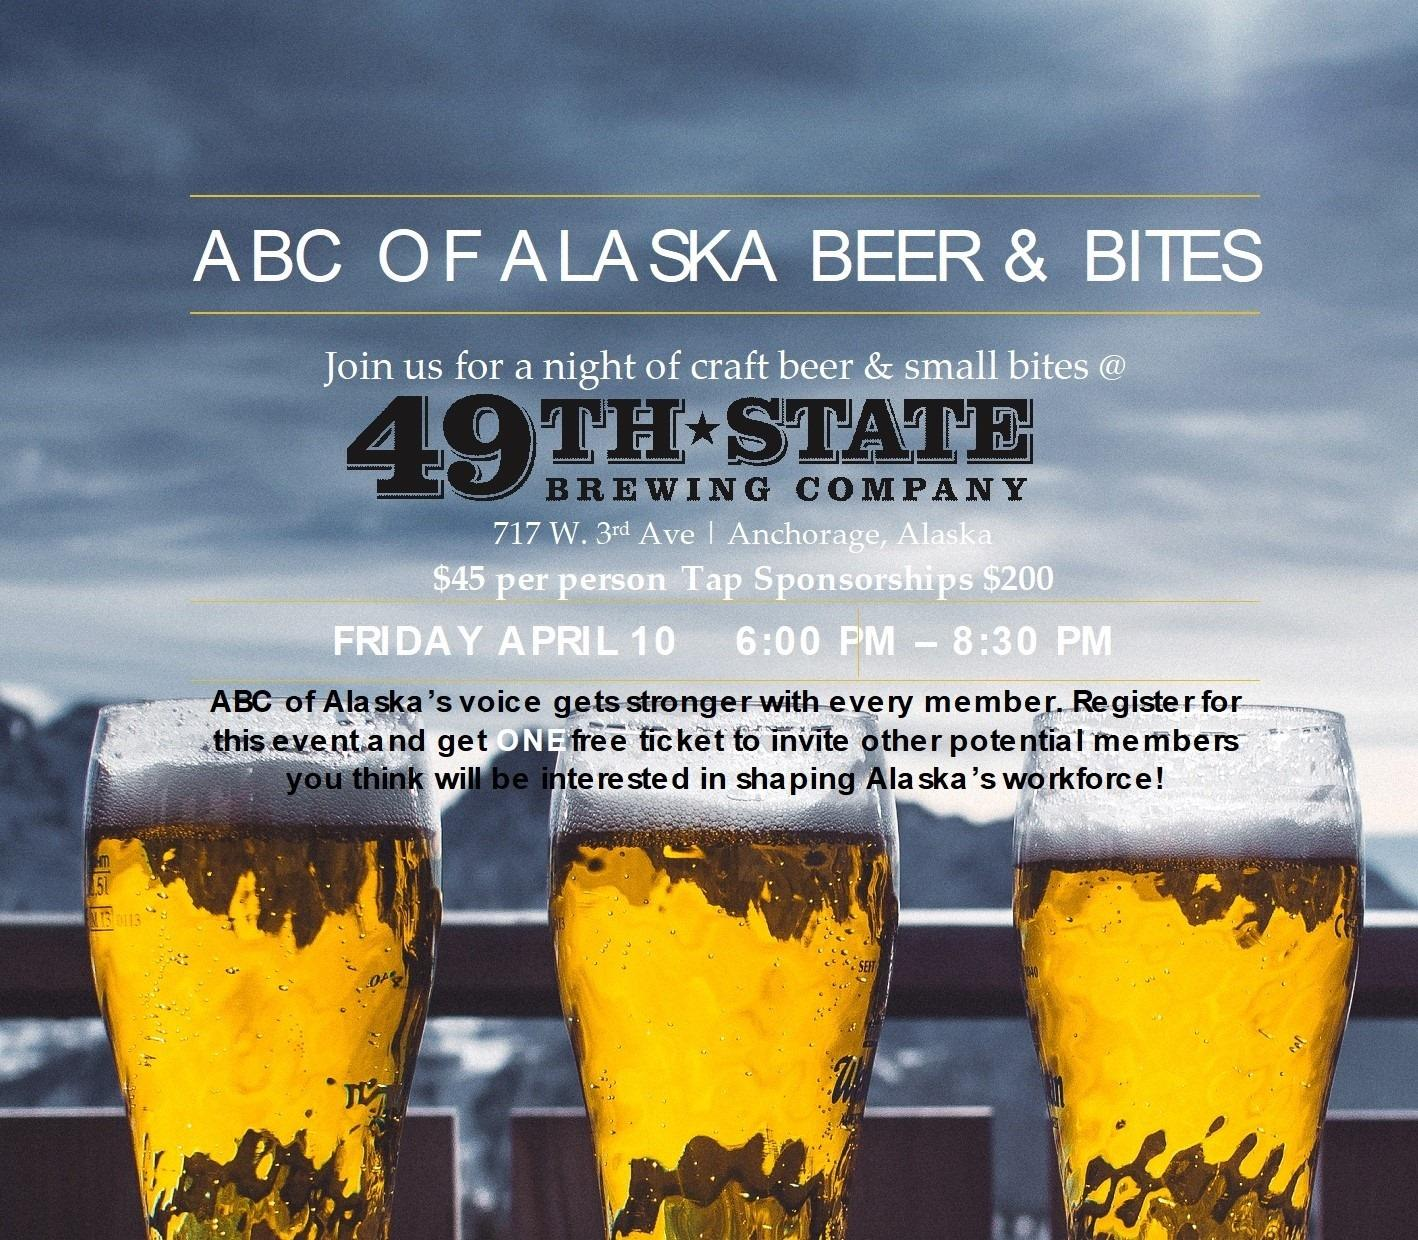 ABC of Alaska's Annual Beer & Bites